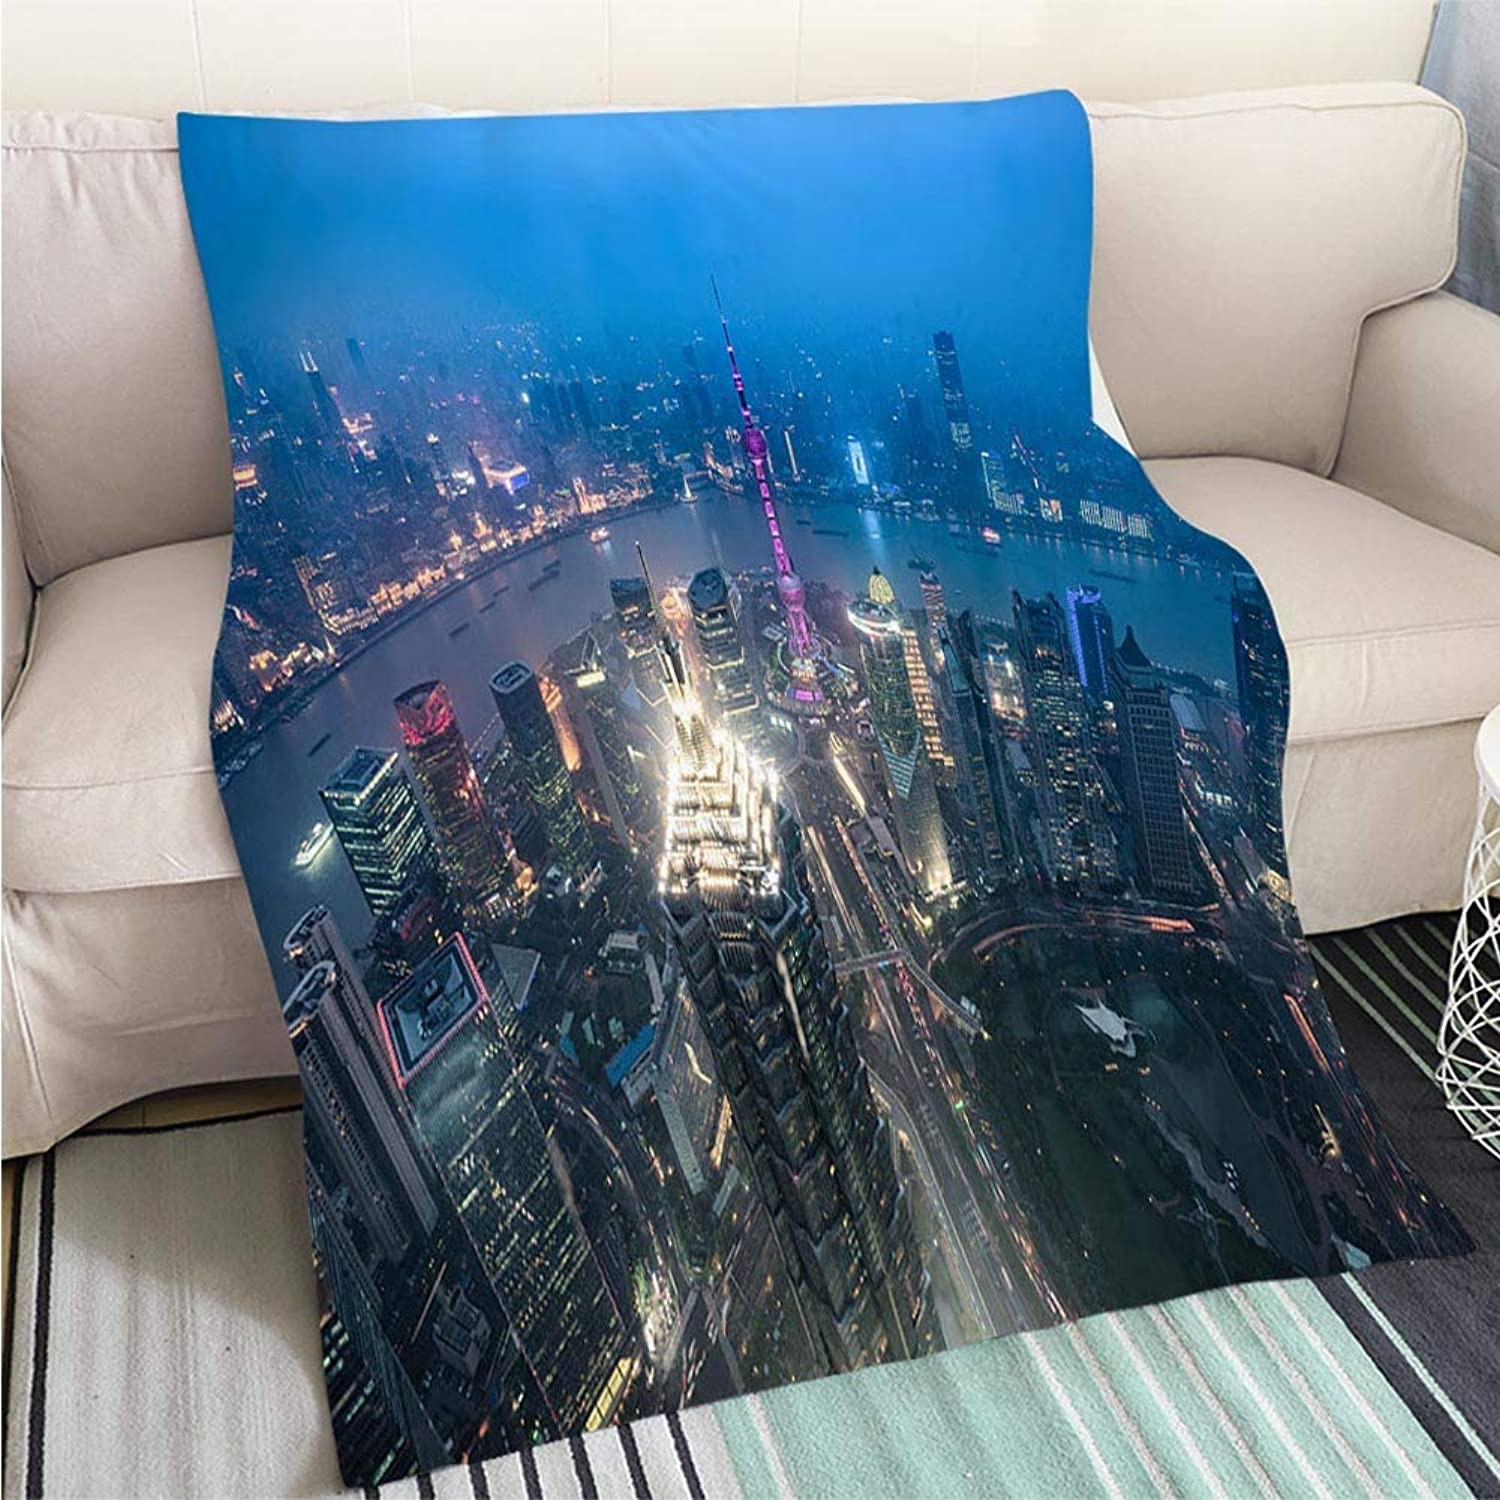 Art Design Photos Cool Quilt Night View of The Bund Shanghai Hypoallergenic Blanket for Bed Couch Chair